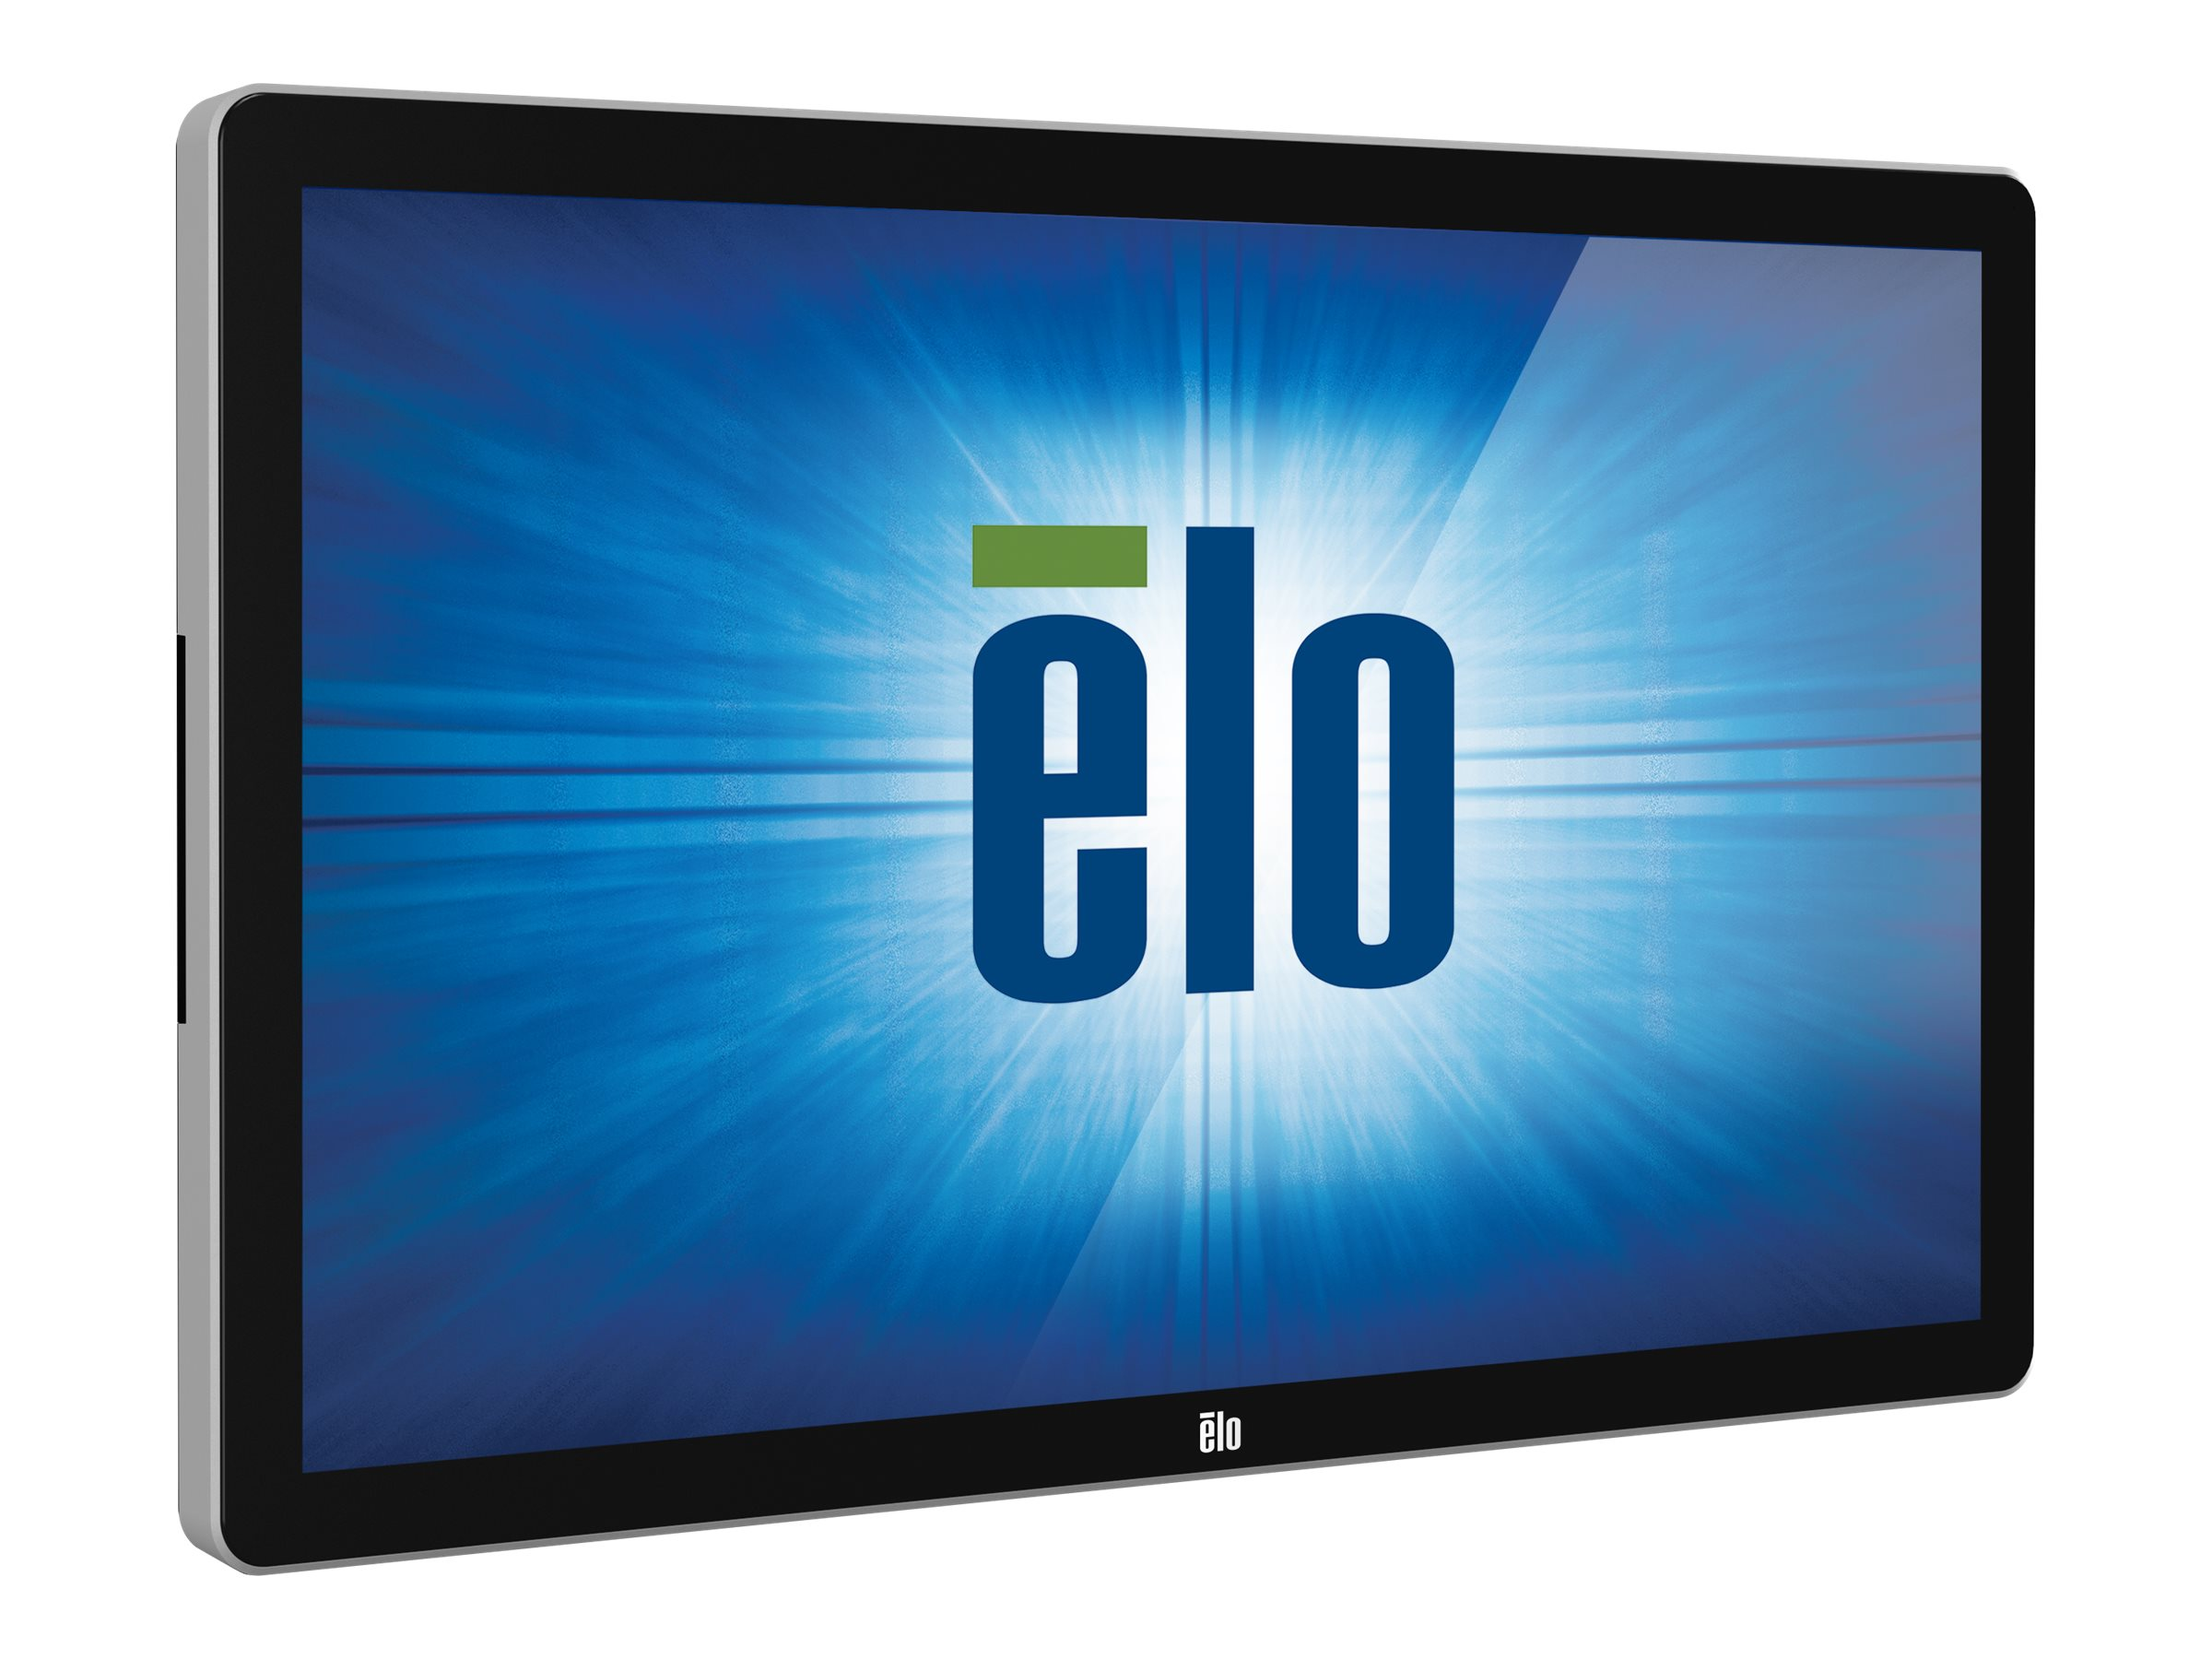 ELO Touch Solutions 32 3202L Full HD LED-LCD IR Touchscreen Display, Black, E222368